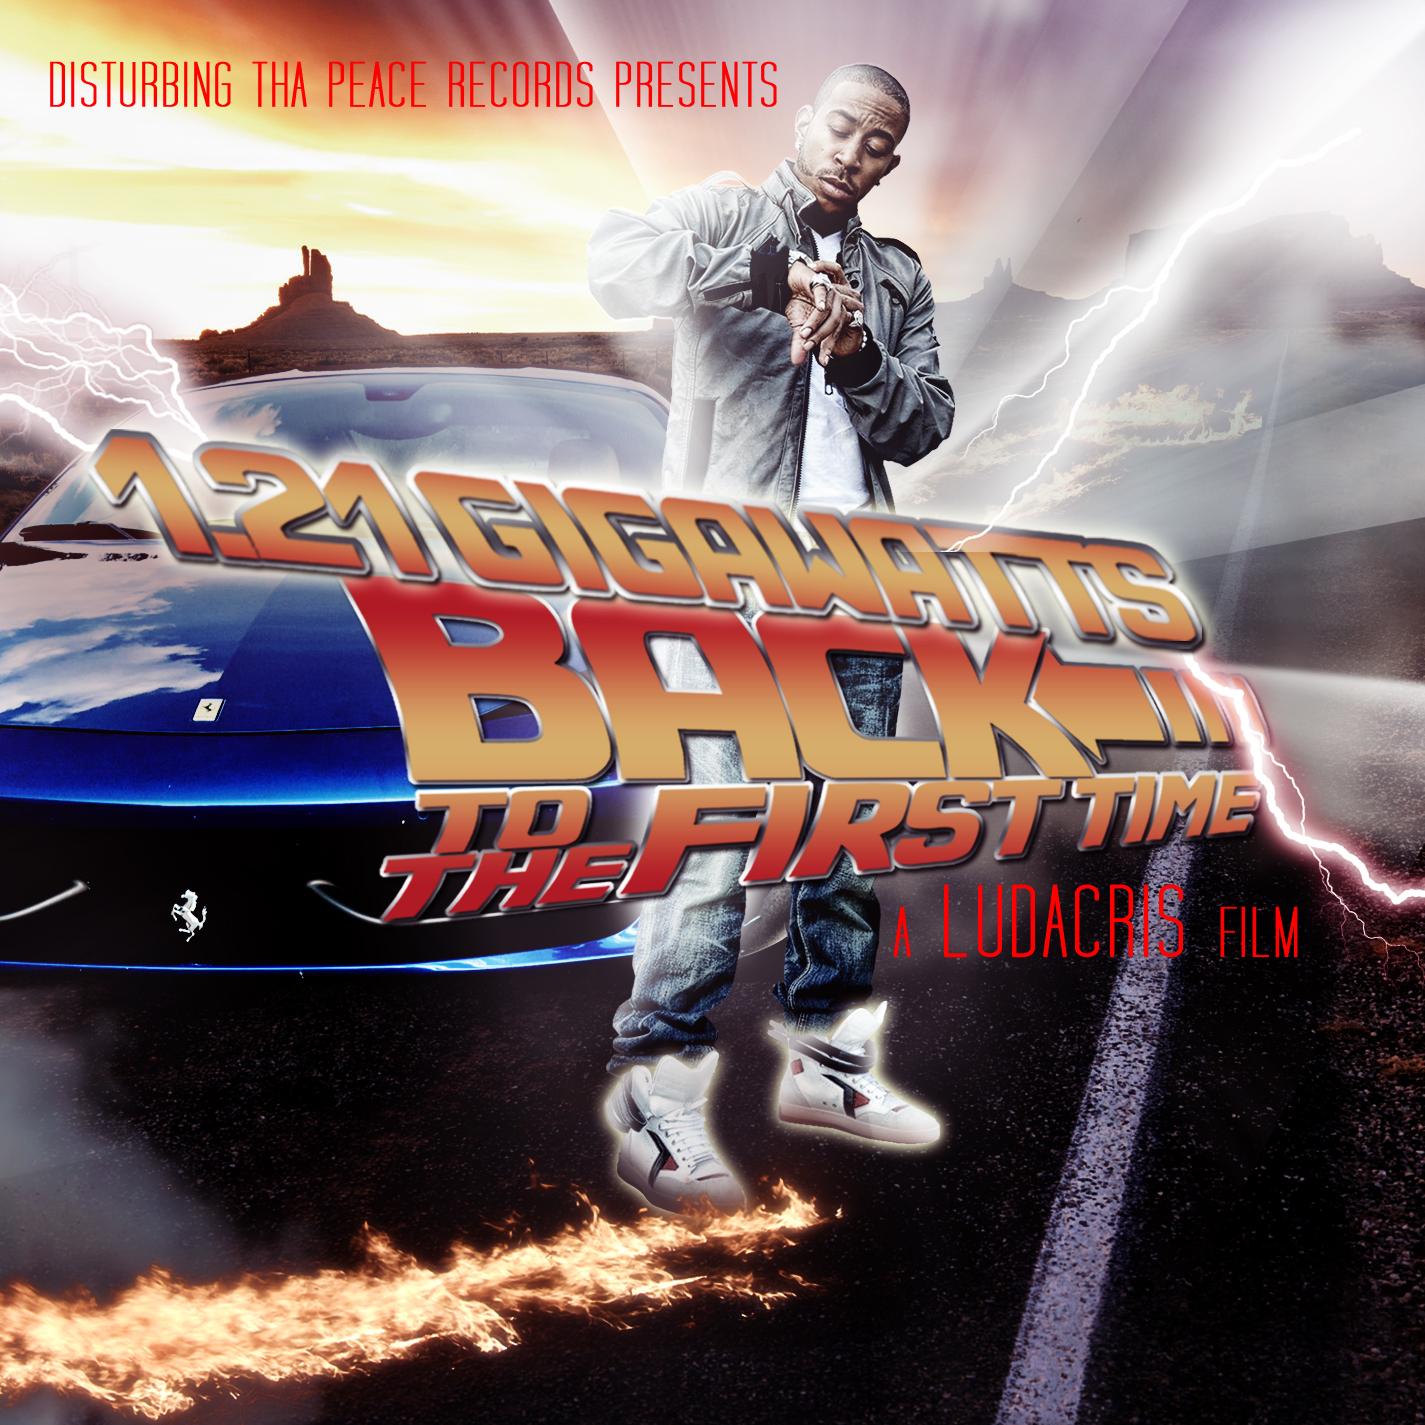 Ludacris – 1.21 Gigawatts: Back To The First Time (Mixtape)